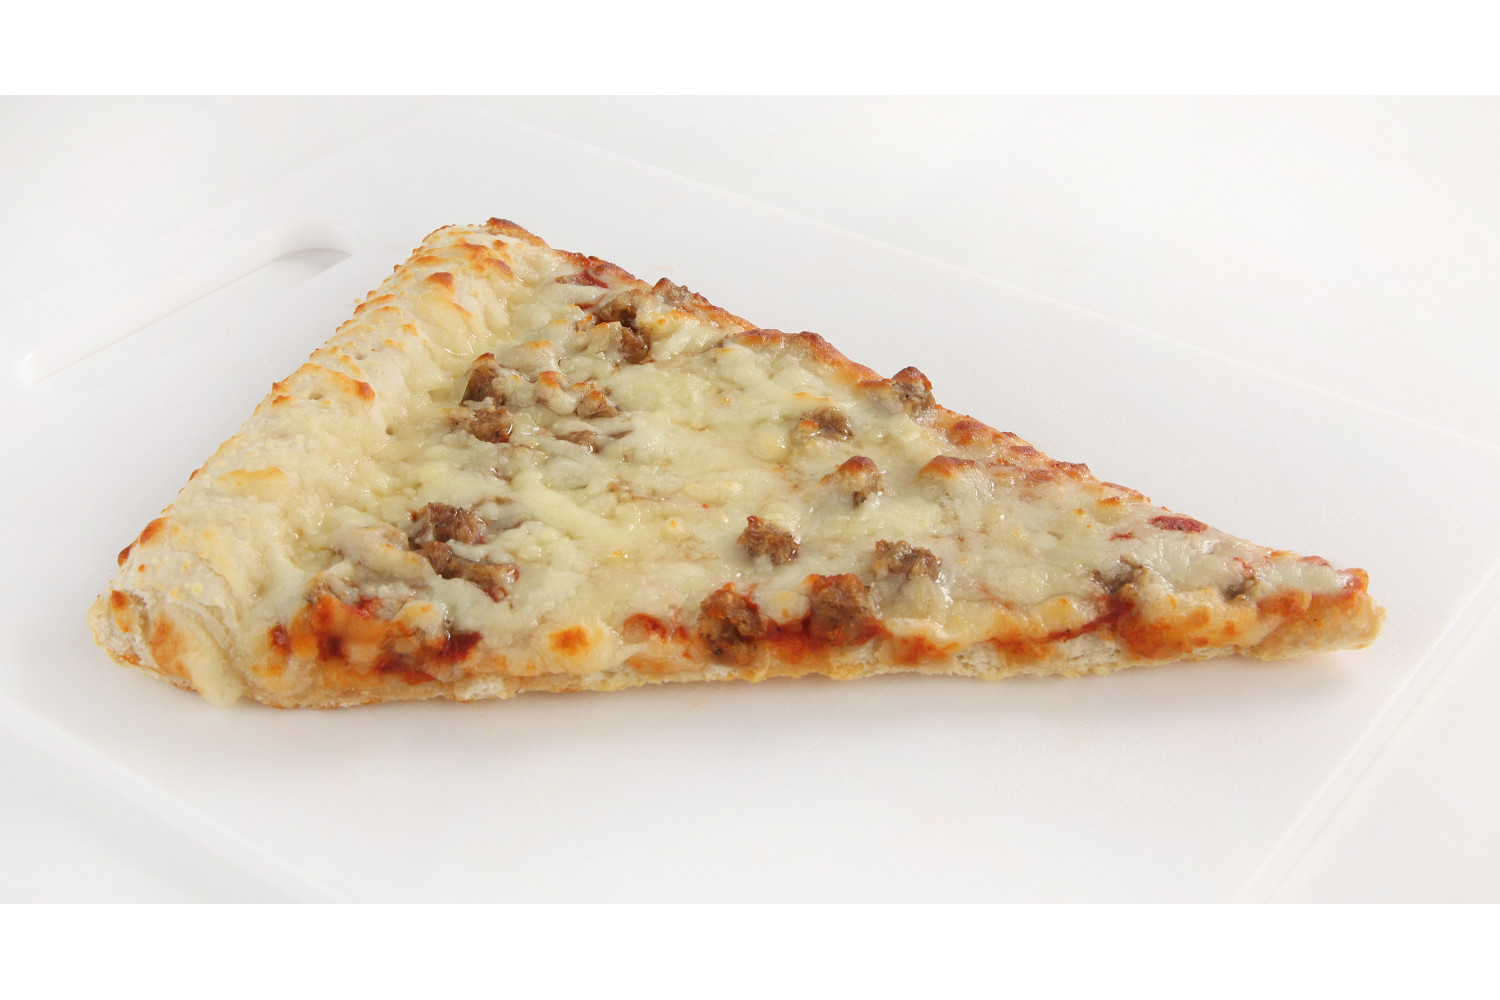 Stuffed Crust Whole Grain Sausage, 4.95 oz, CN